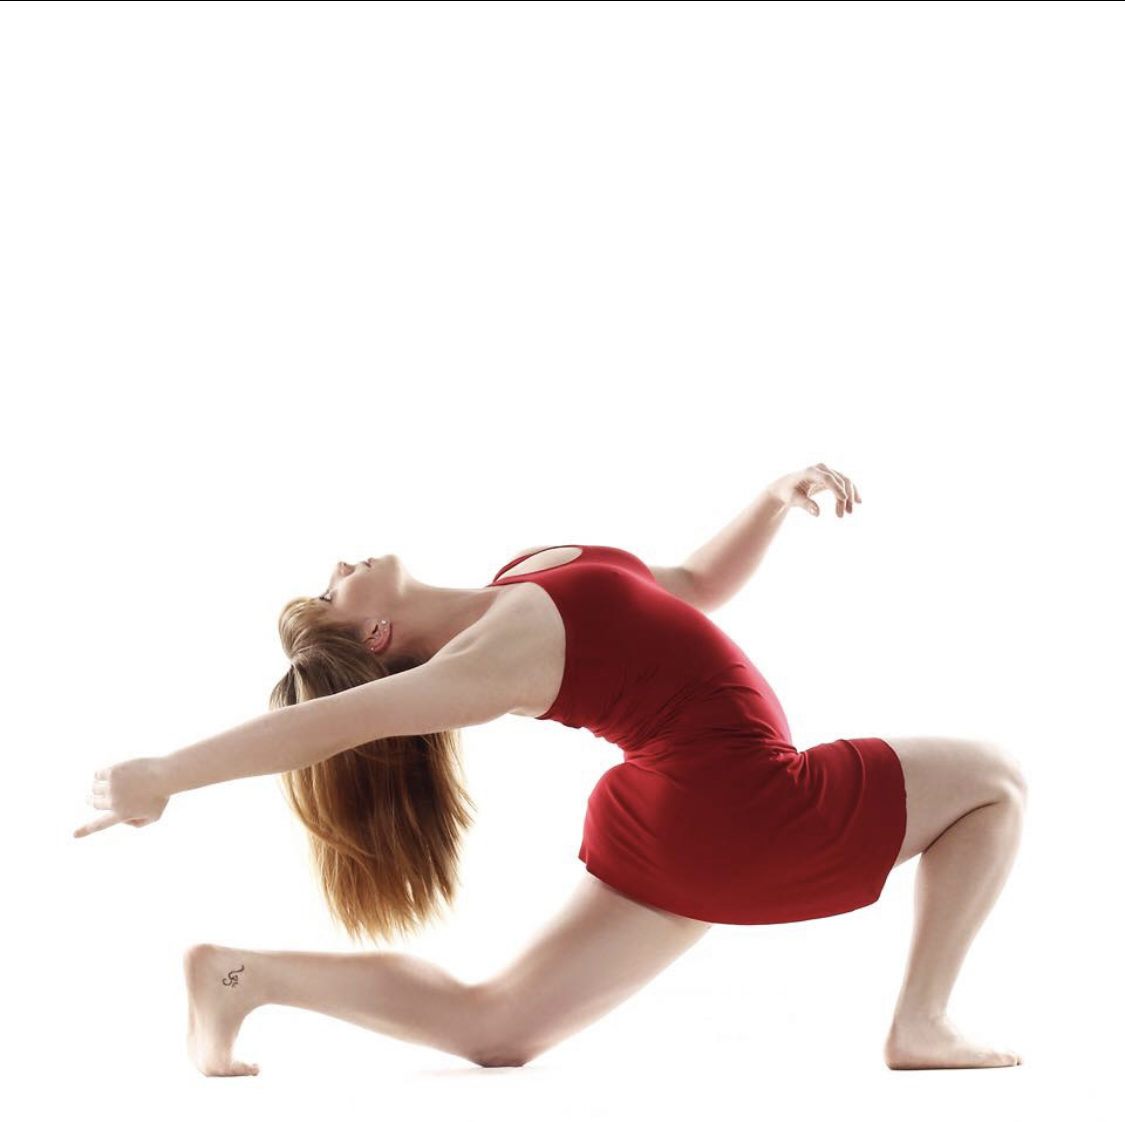 dancer in red dress lunge and back bend